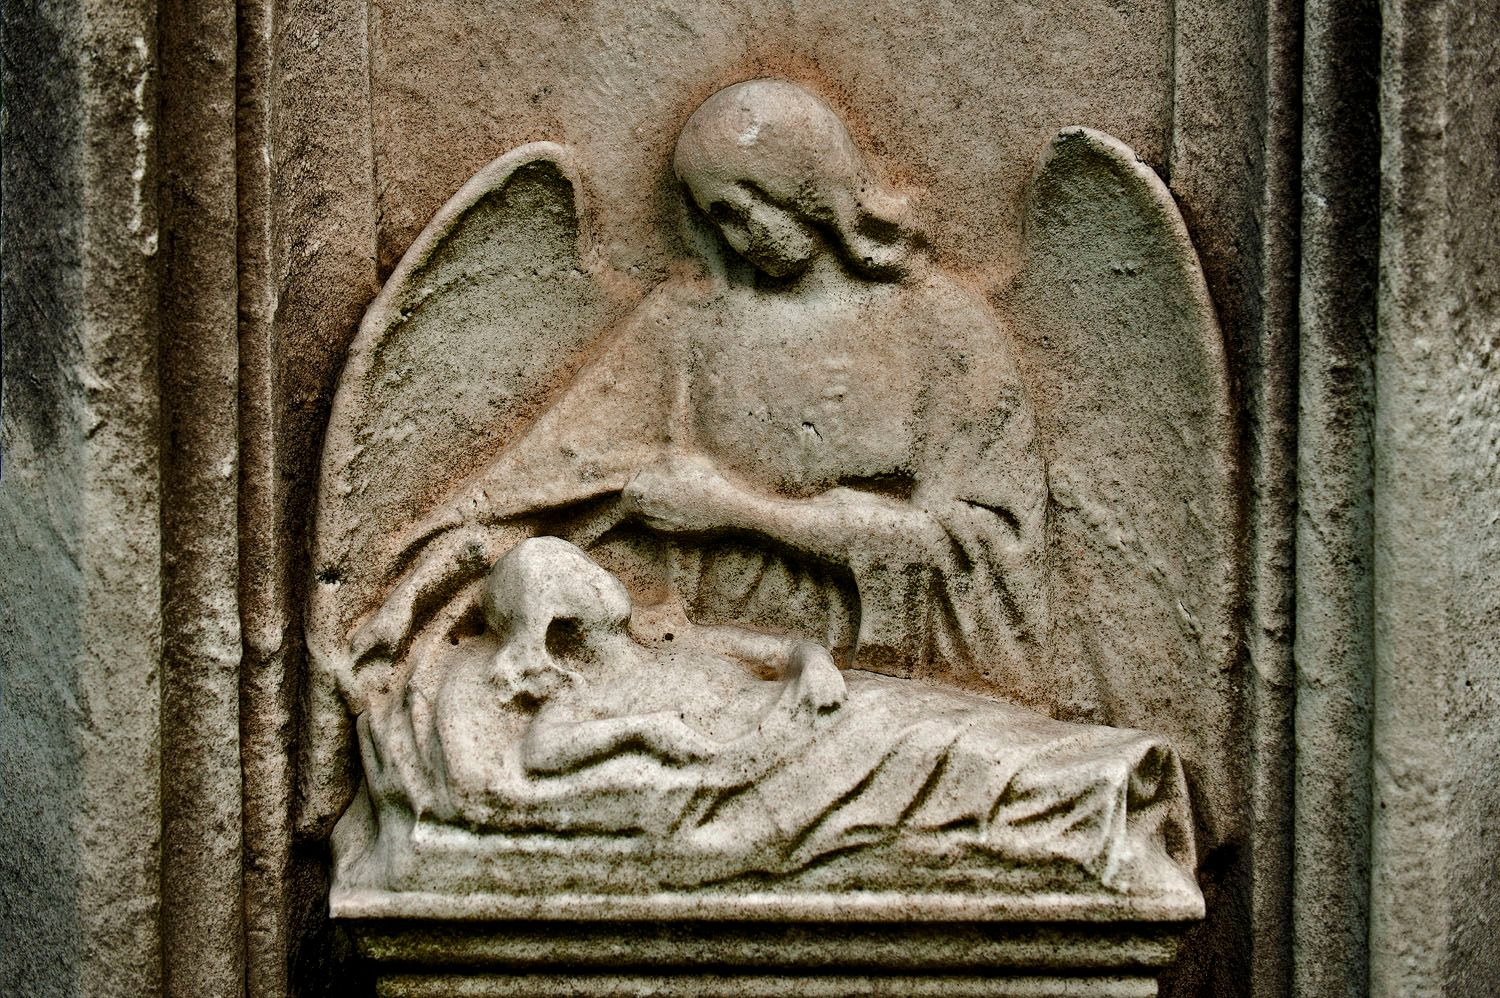 Child with Angel